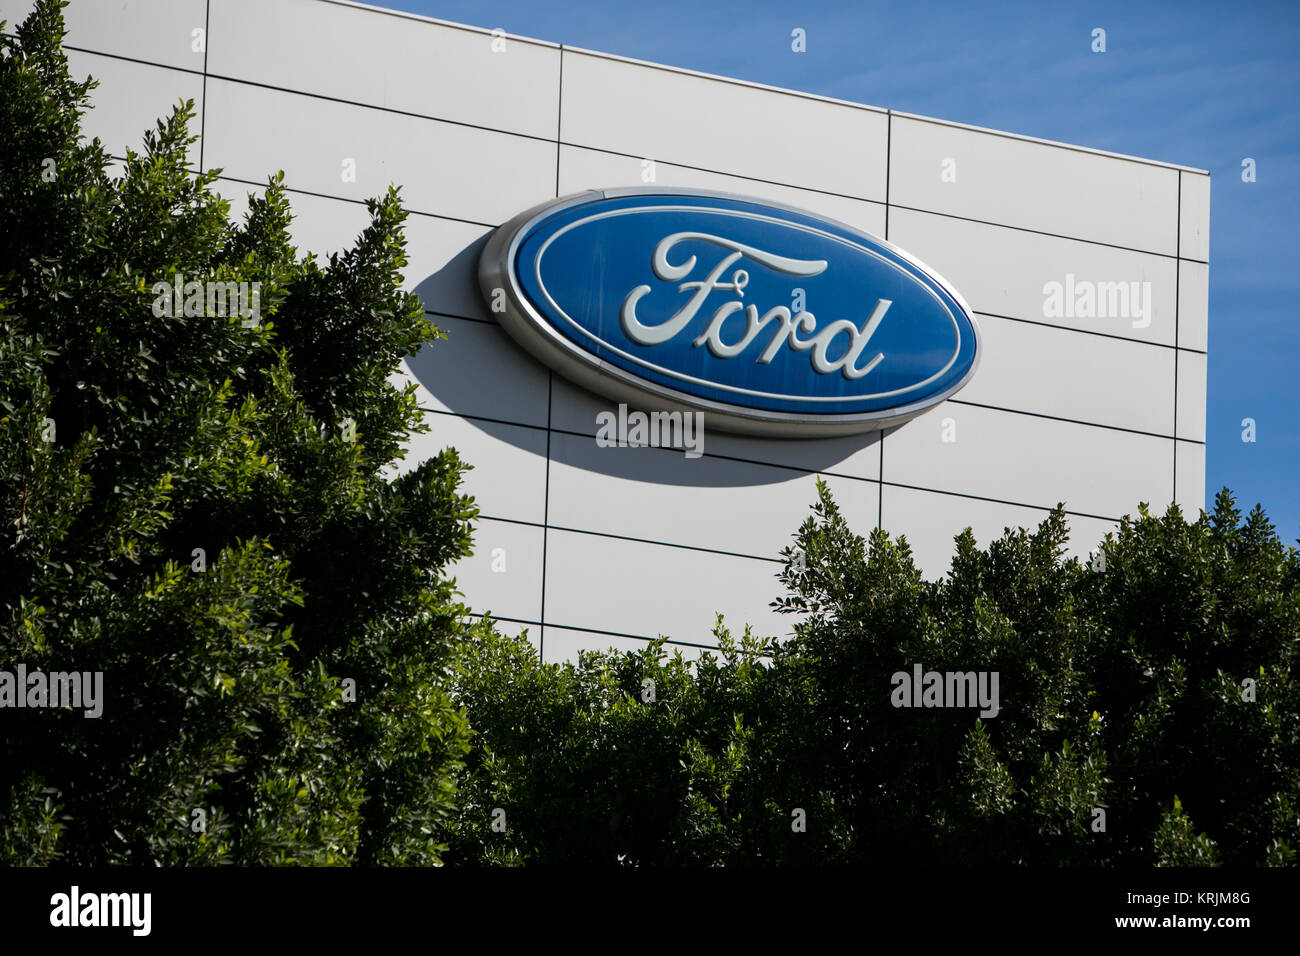 ford motor company memo Ford motor company has a specific procedure you can follow should you wish to express your concerns 1 contact the salesperson or service adviser you normally deal with at your ford dealership and express your concerns.